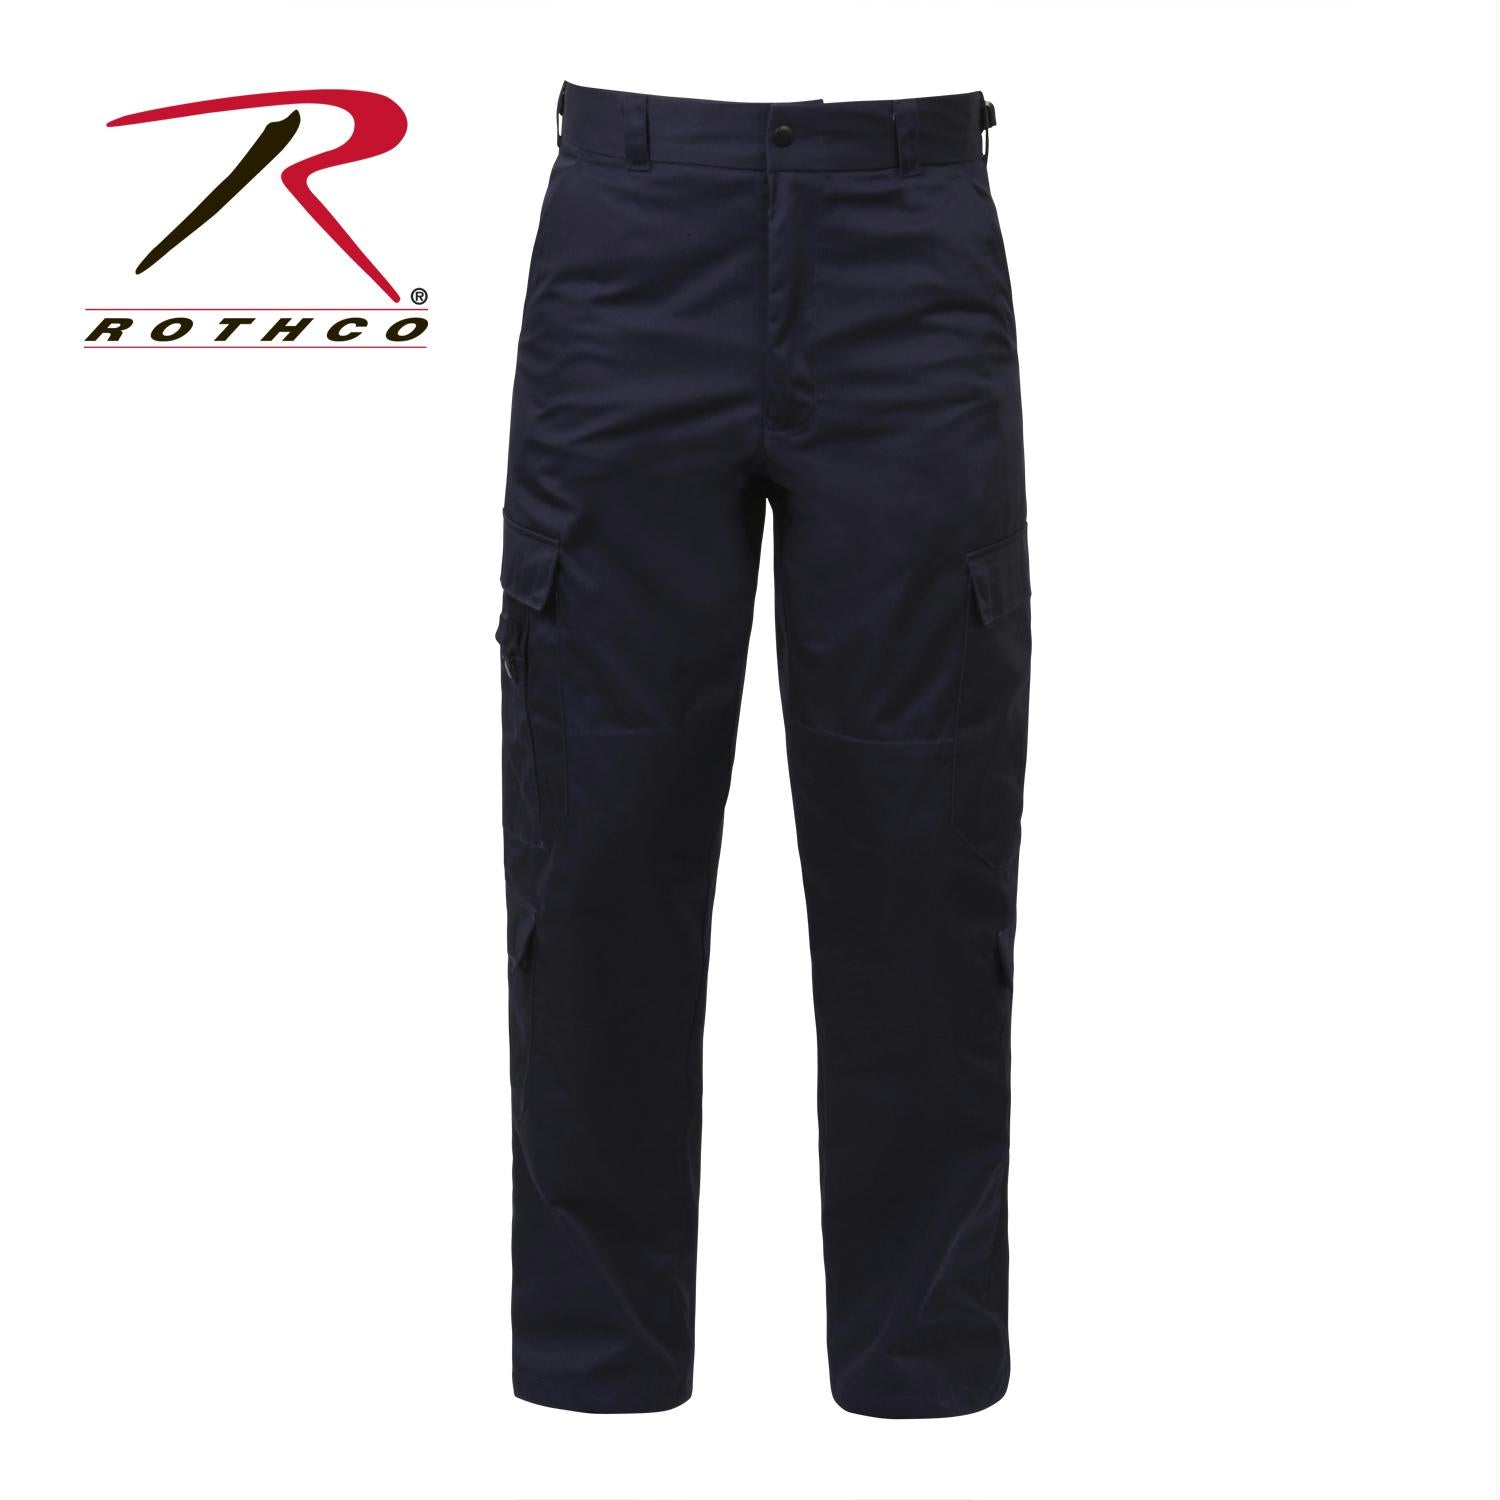 Rothco EMT Pants - Black / S - Short